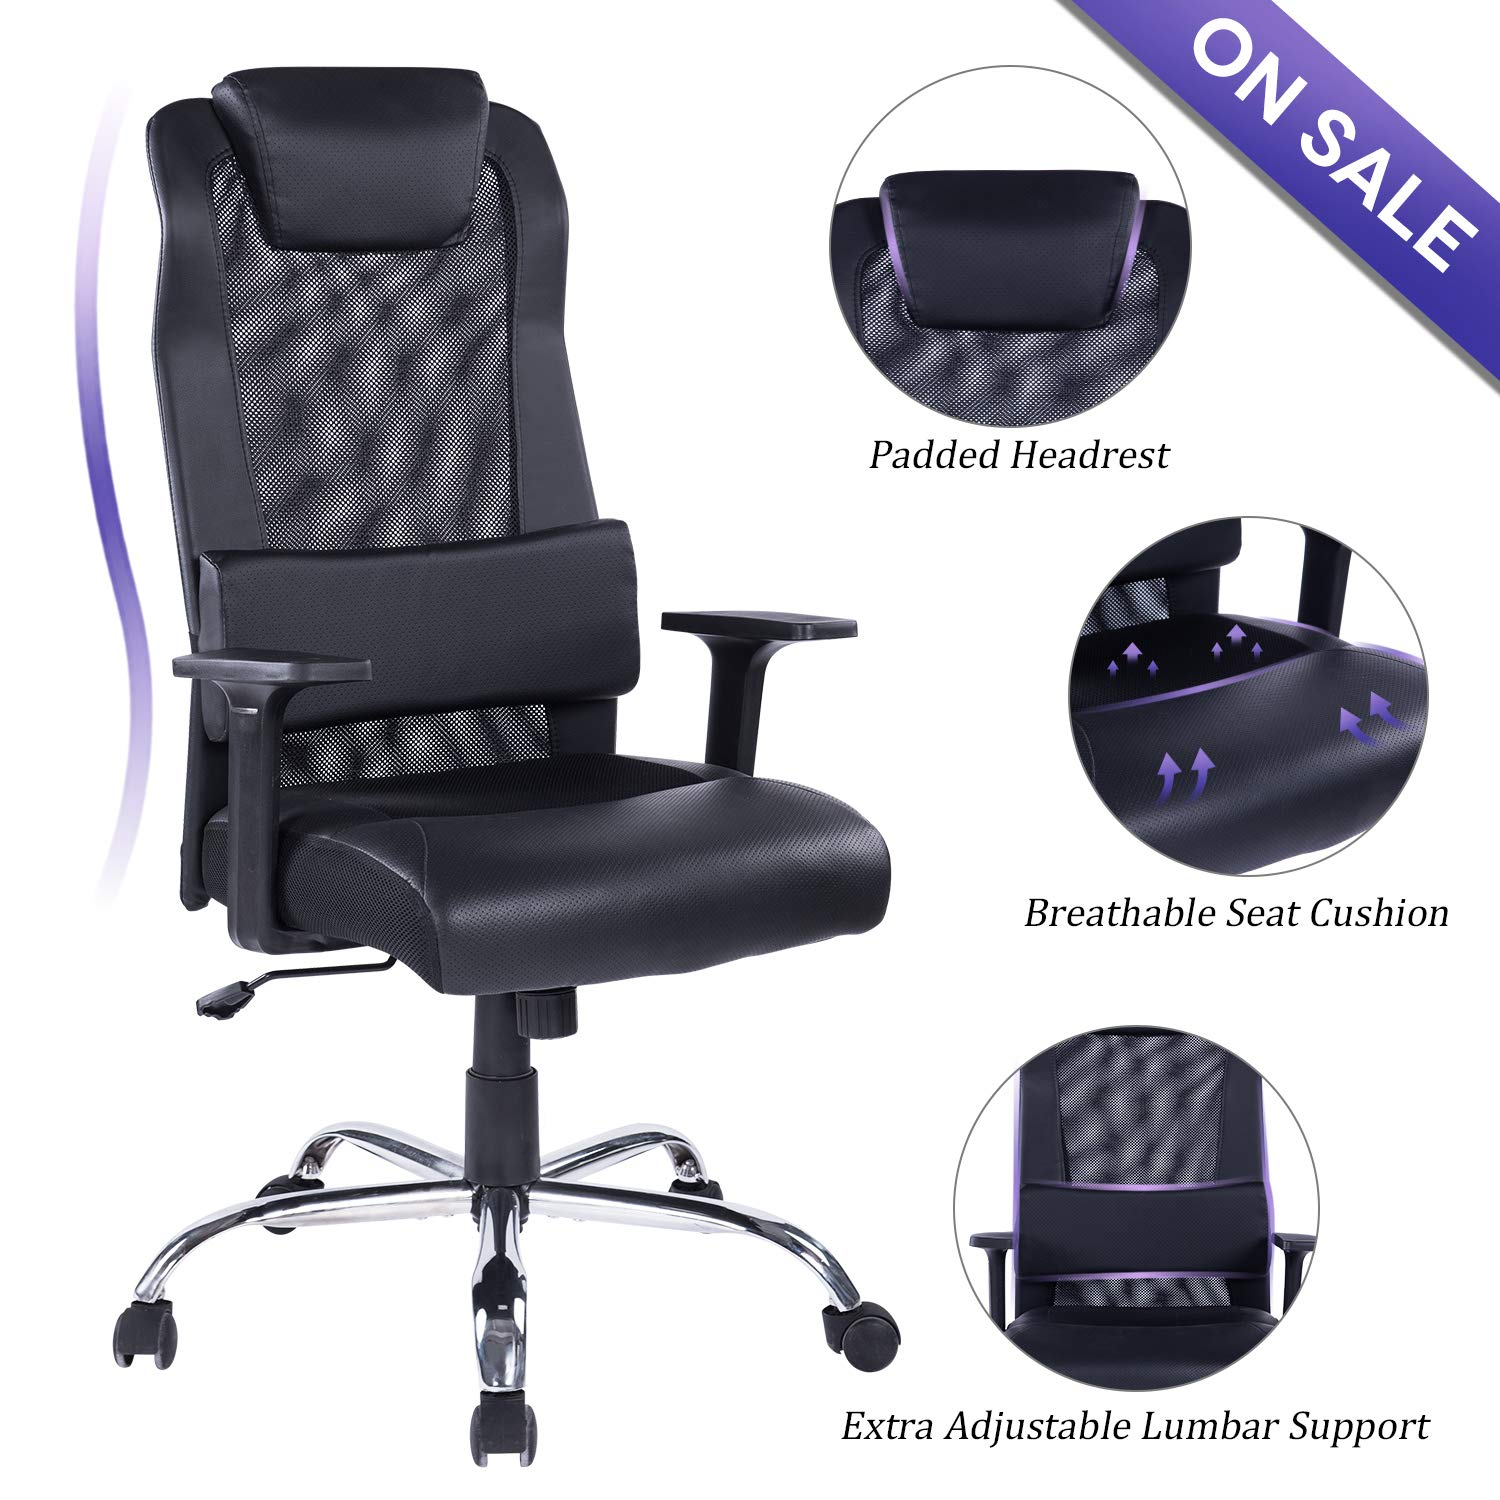 REFICCER Mesh PU Leather Office Chair Computer Desk Task Ergonomic Swivel Chair – Adjustable Lumbar Support and Padded Headrest, Black